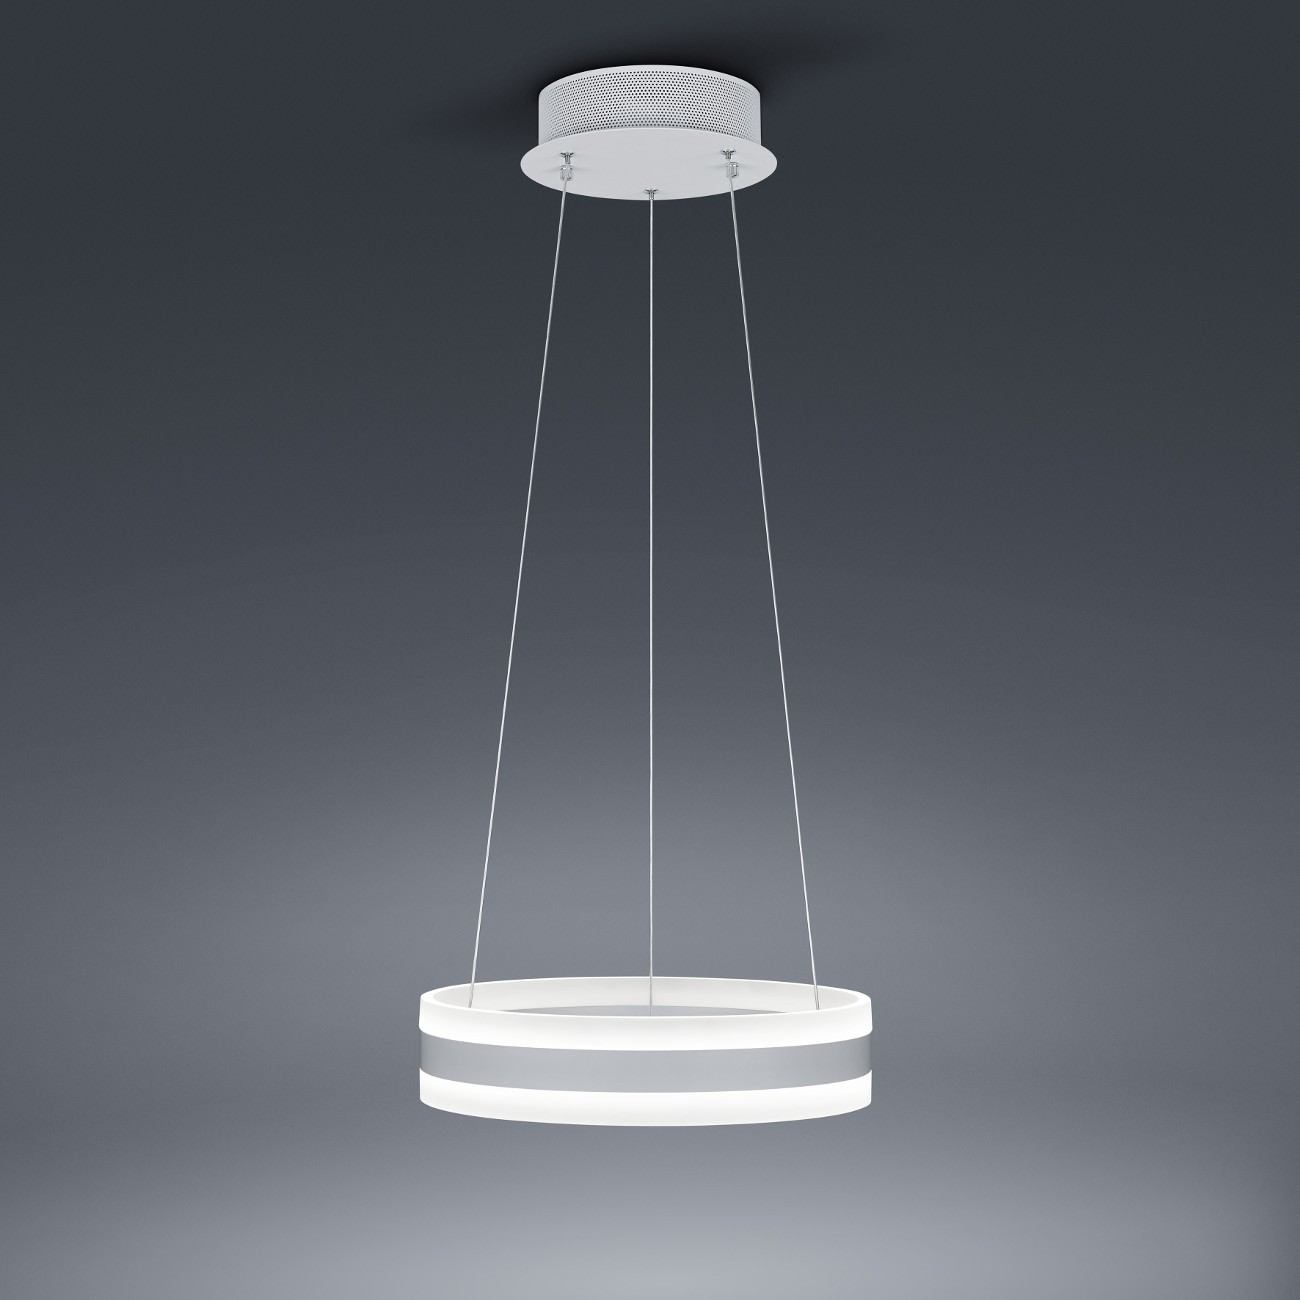 Exklusive dimmbare led pendelleuchte in wei matt design for Led pendelleuchte